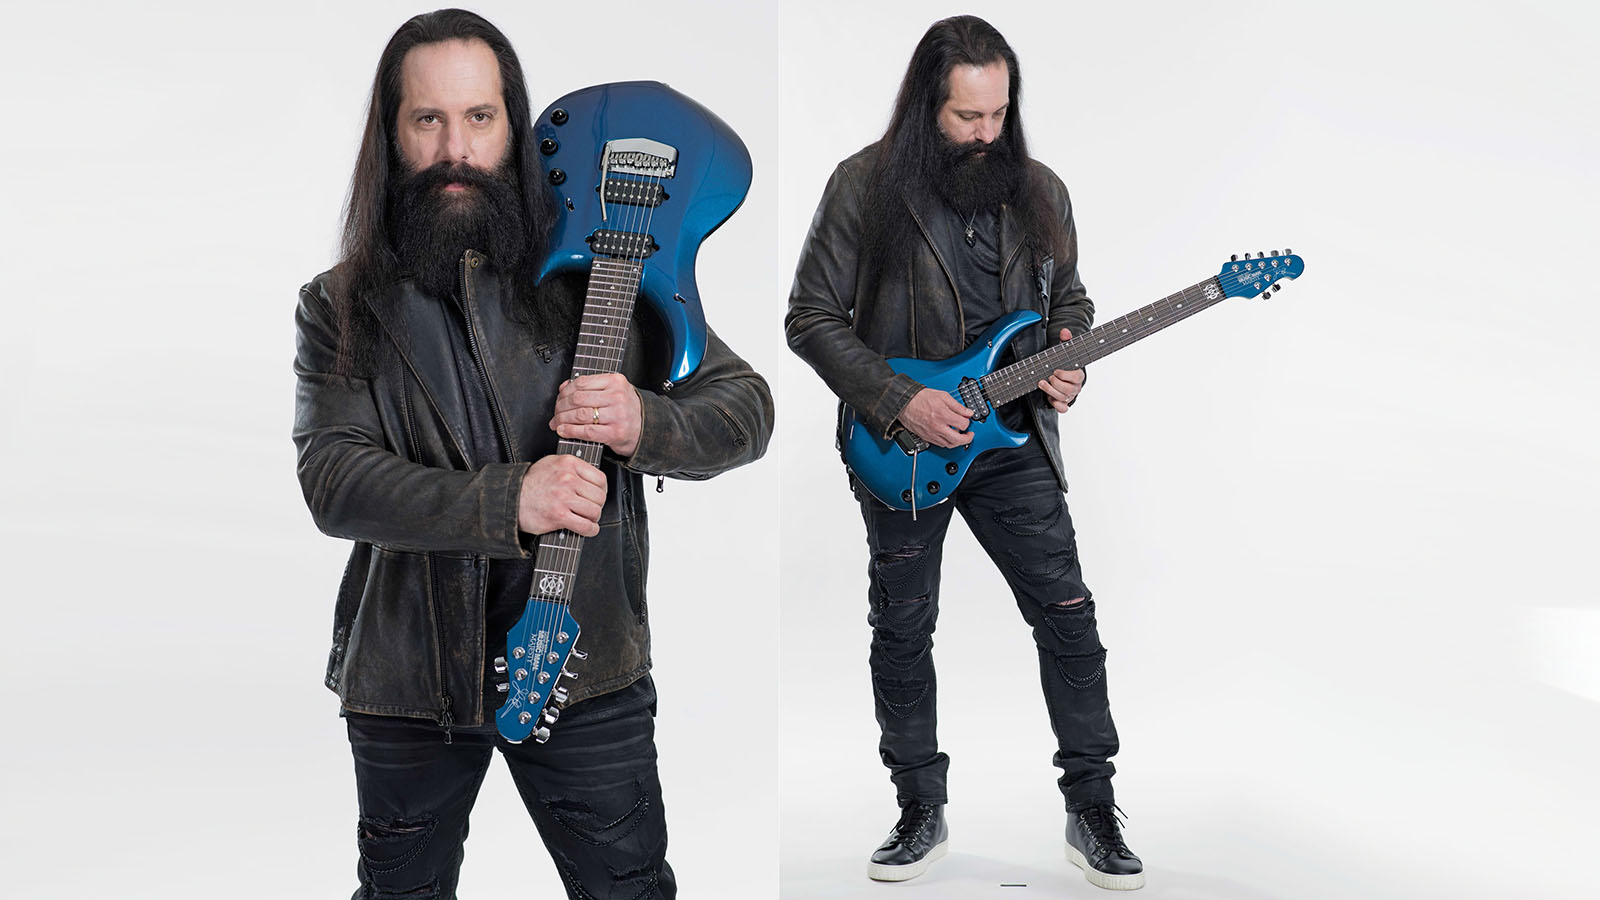 Time to Focus! John Petrucci on Two of His Most Challenging Guitar Performances